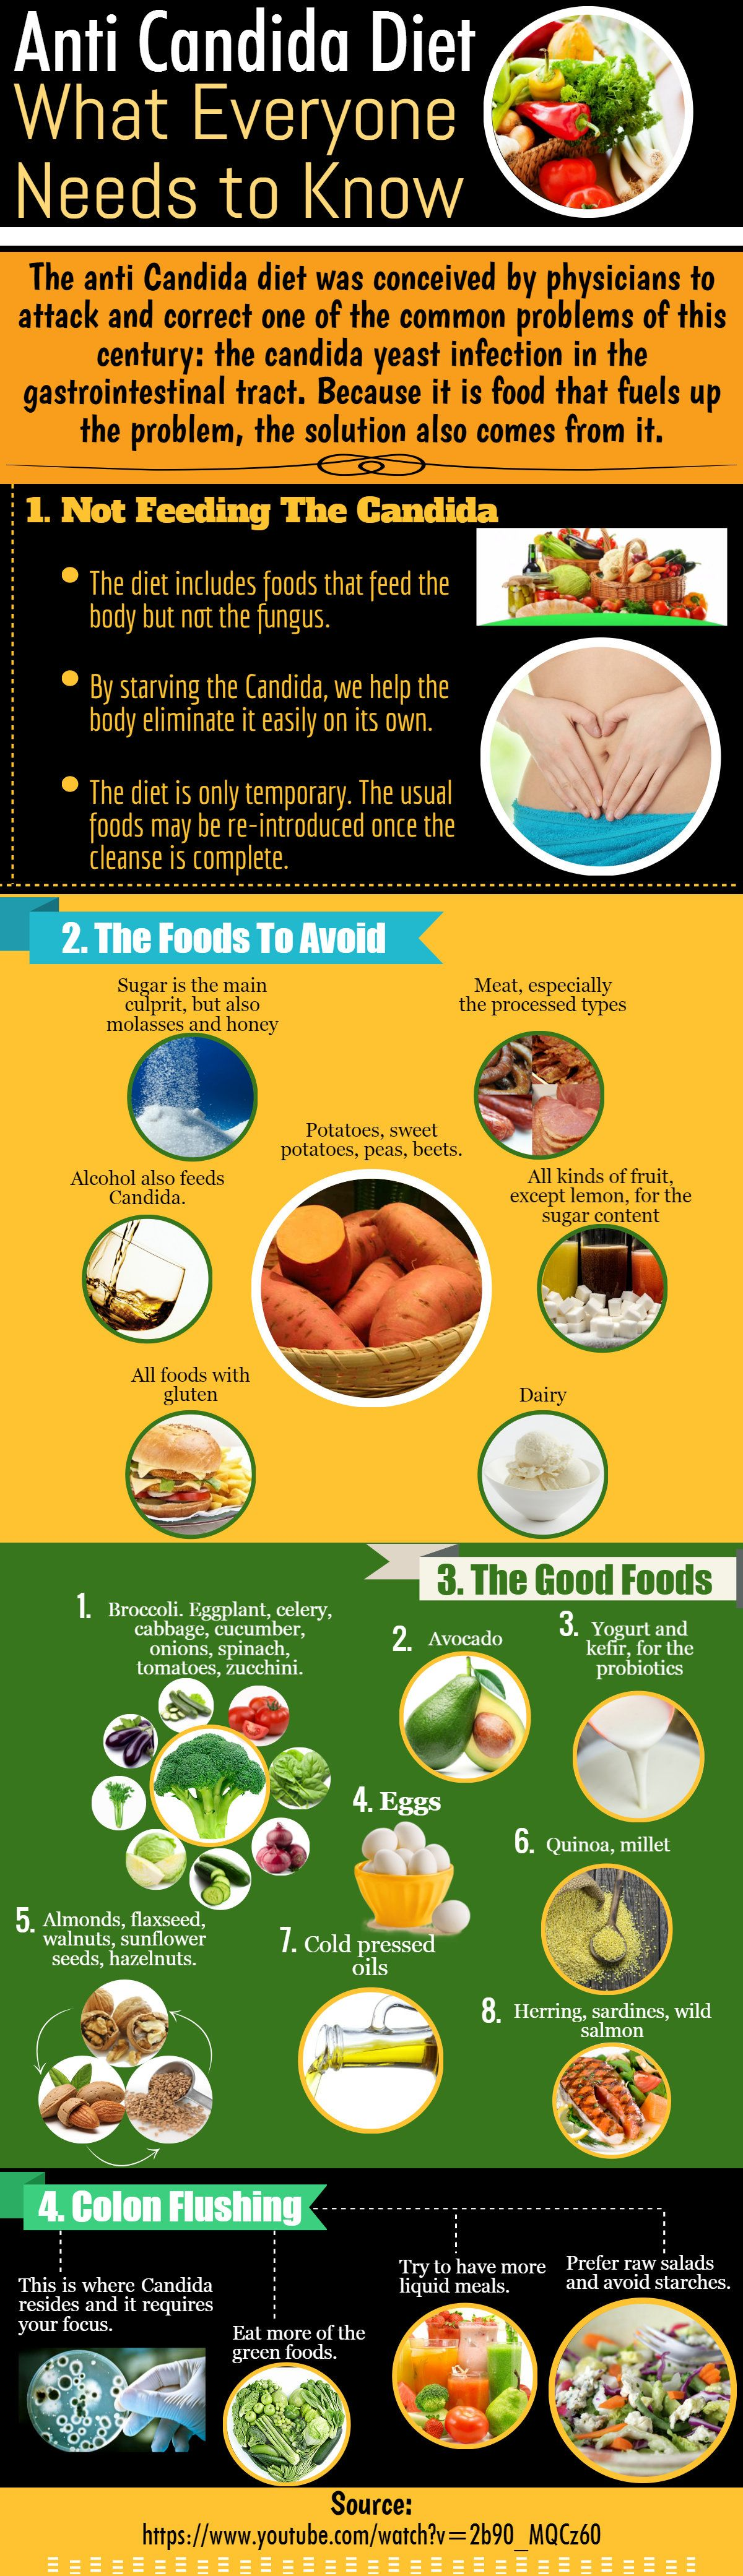 Pin On Anti Candida Diet